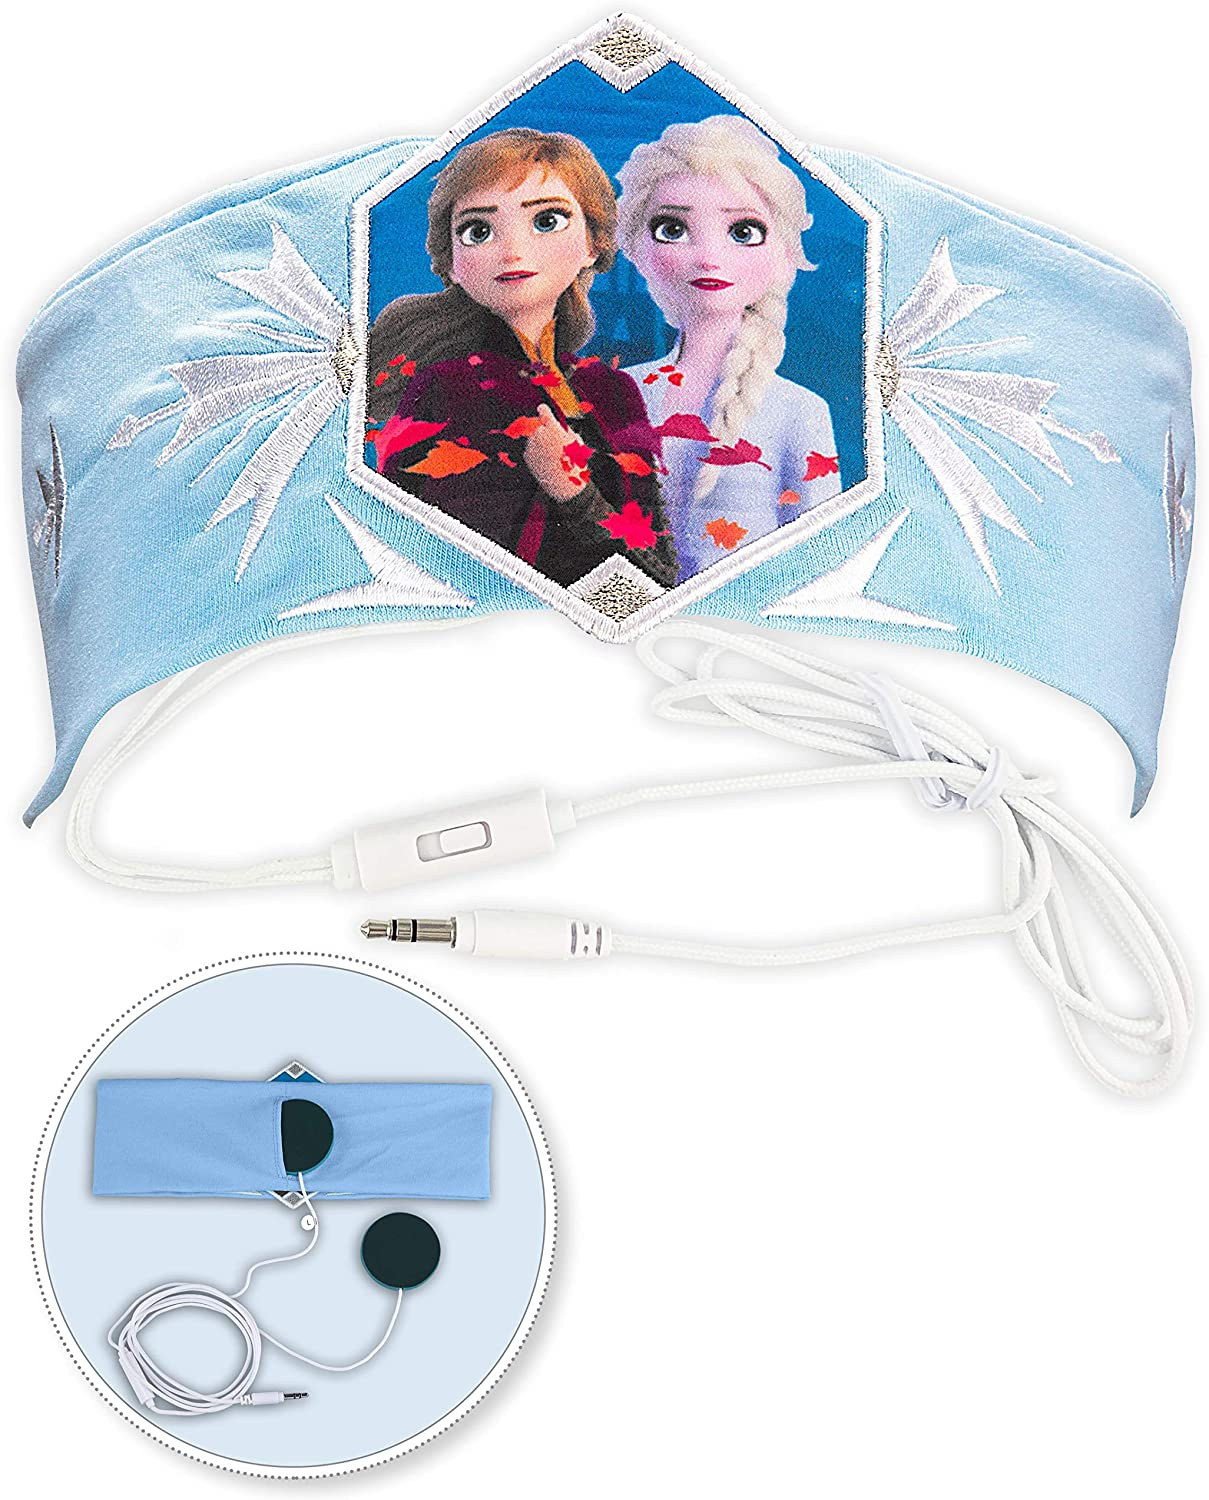 Kids Headband Headphones Volume Limiting Switch Thin Speakers & Comfortable Soft Cotton Headband Perfect for Children's Earphones for School Home and Travel (Frozen 2 (Frustration Free Packaging))